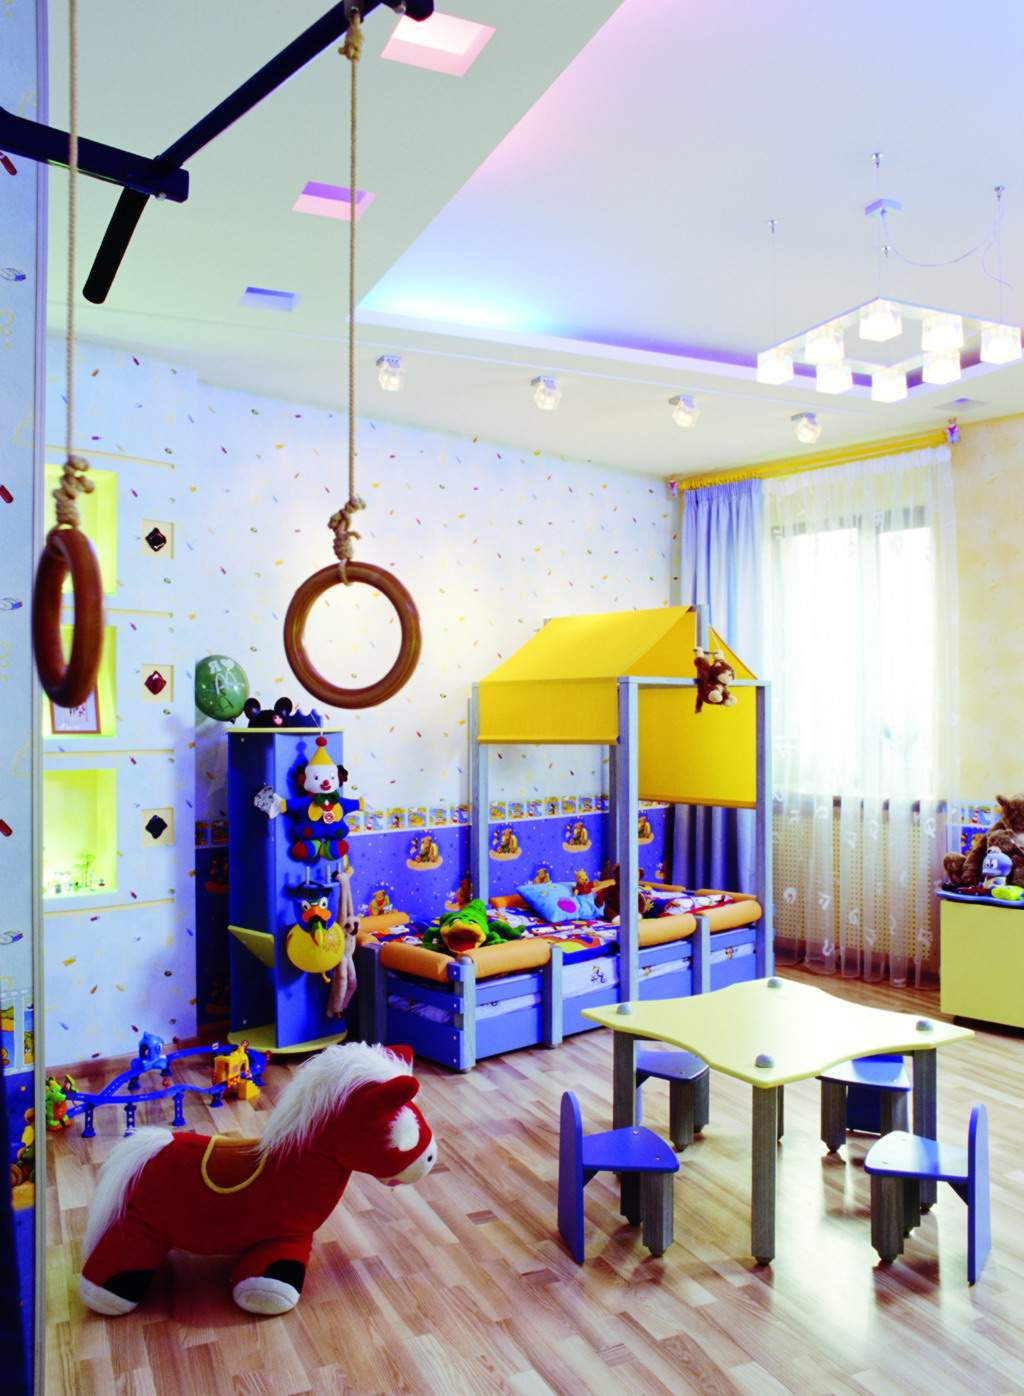 15 creative kids bedroom decorating ideas for Fun room decor